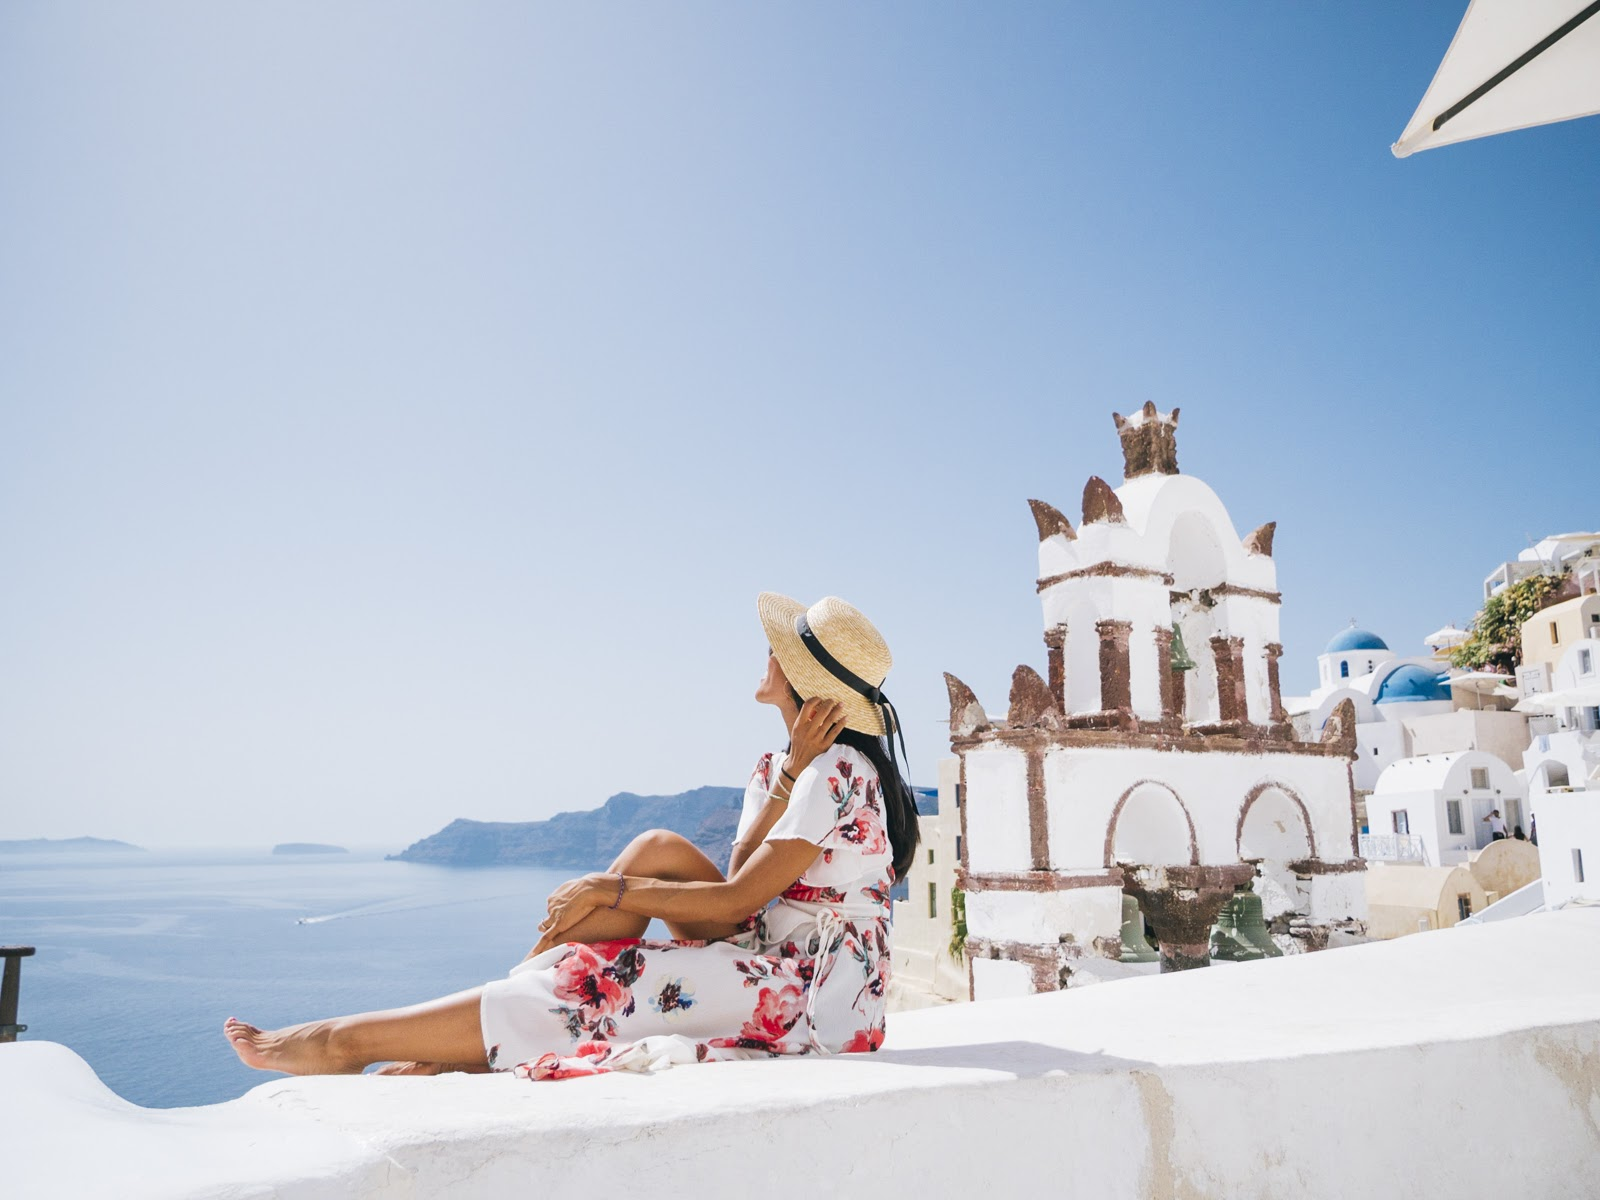 How to Avoid Crowds in Santorini